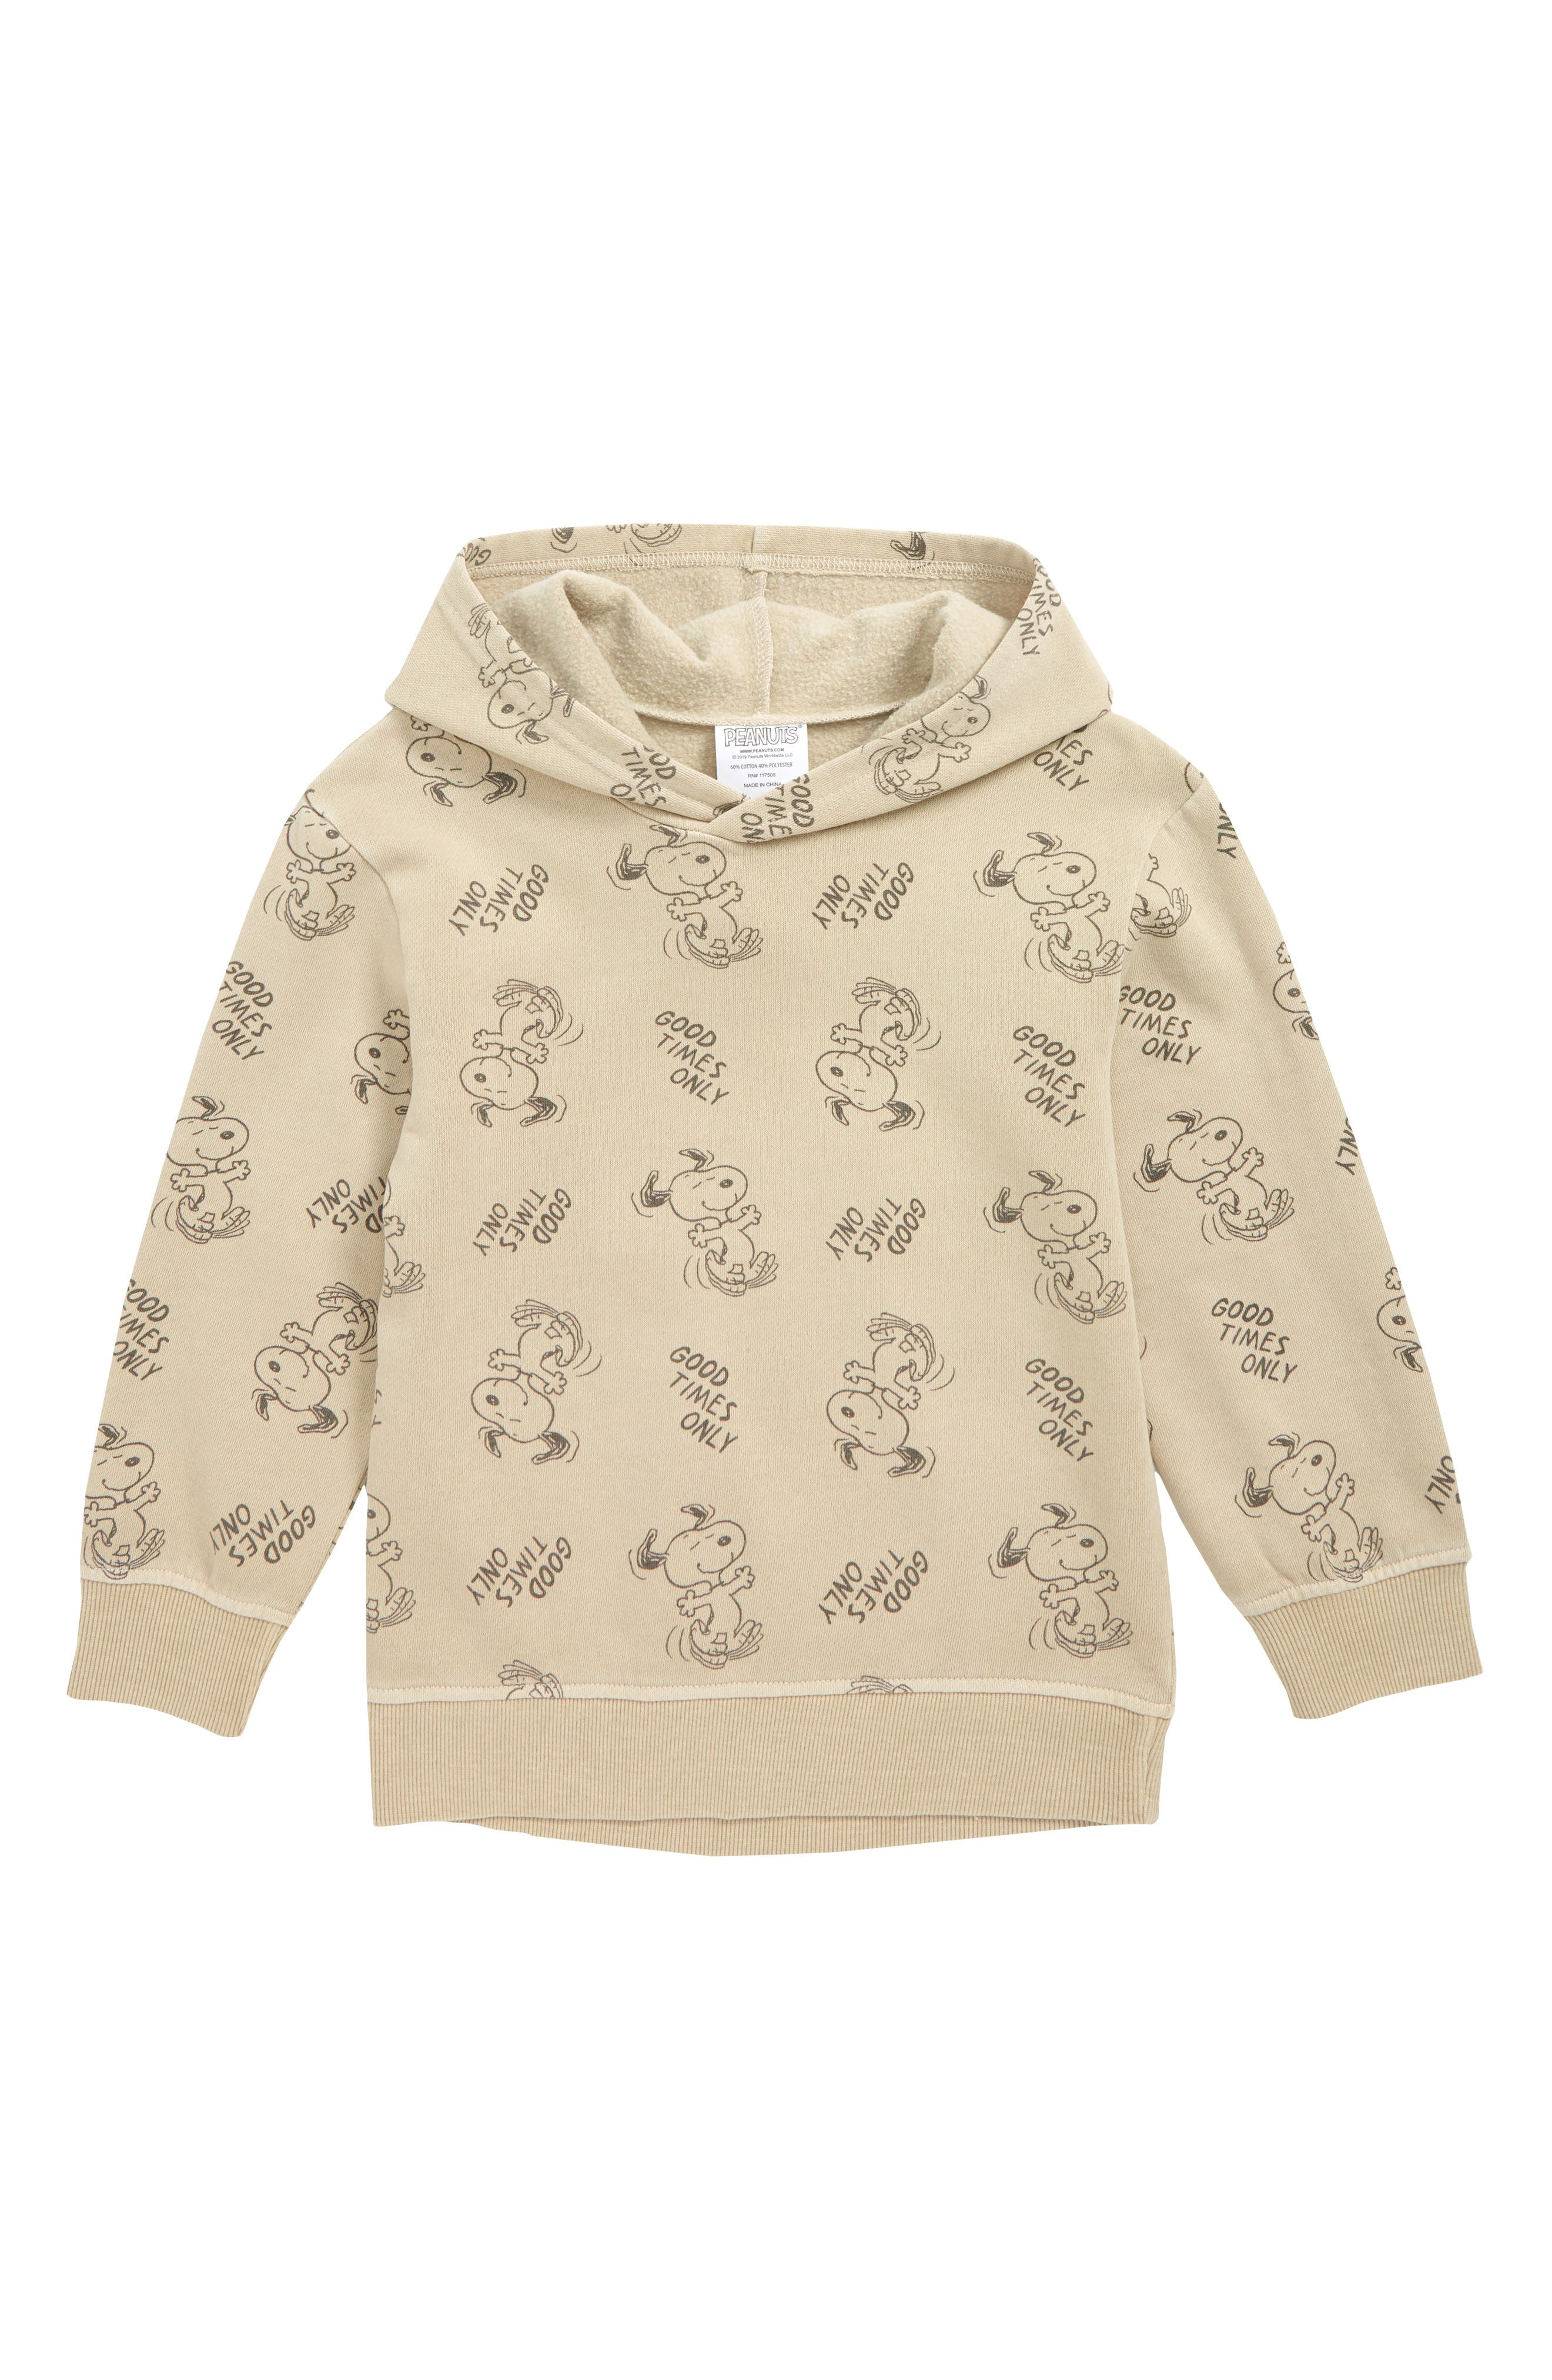 Toddler Boys Jem Snoopy Print Hooded Sweatshirt Size 3T  Brown